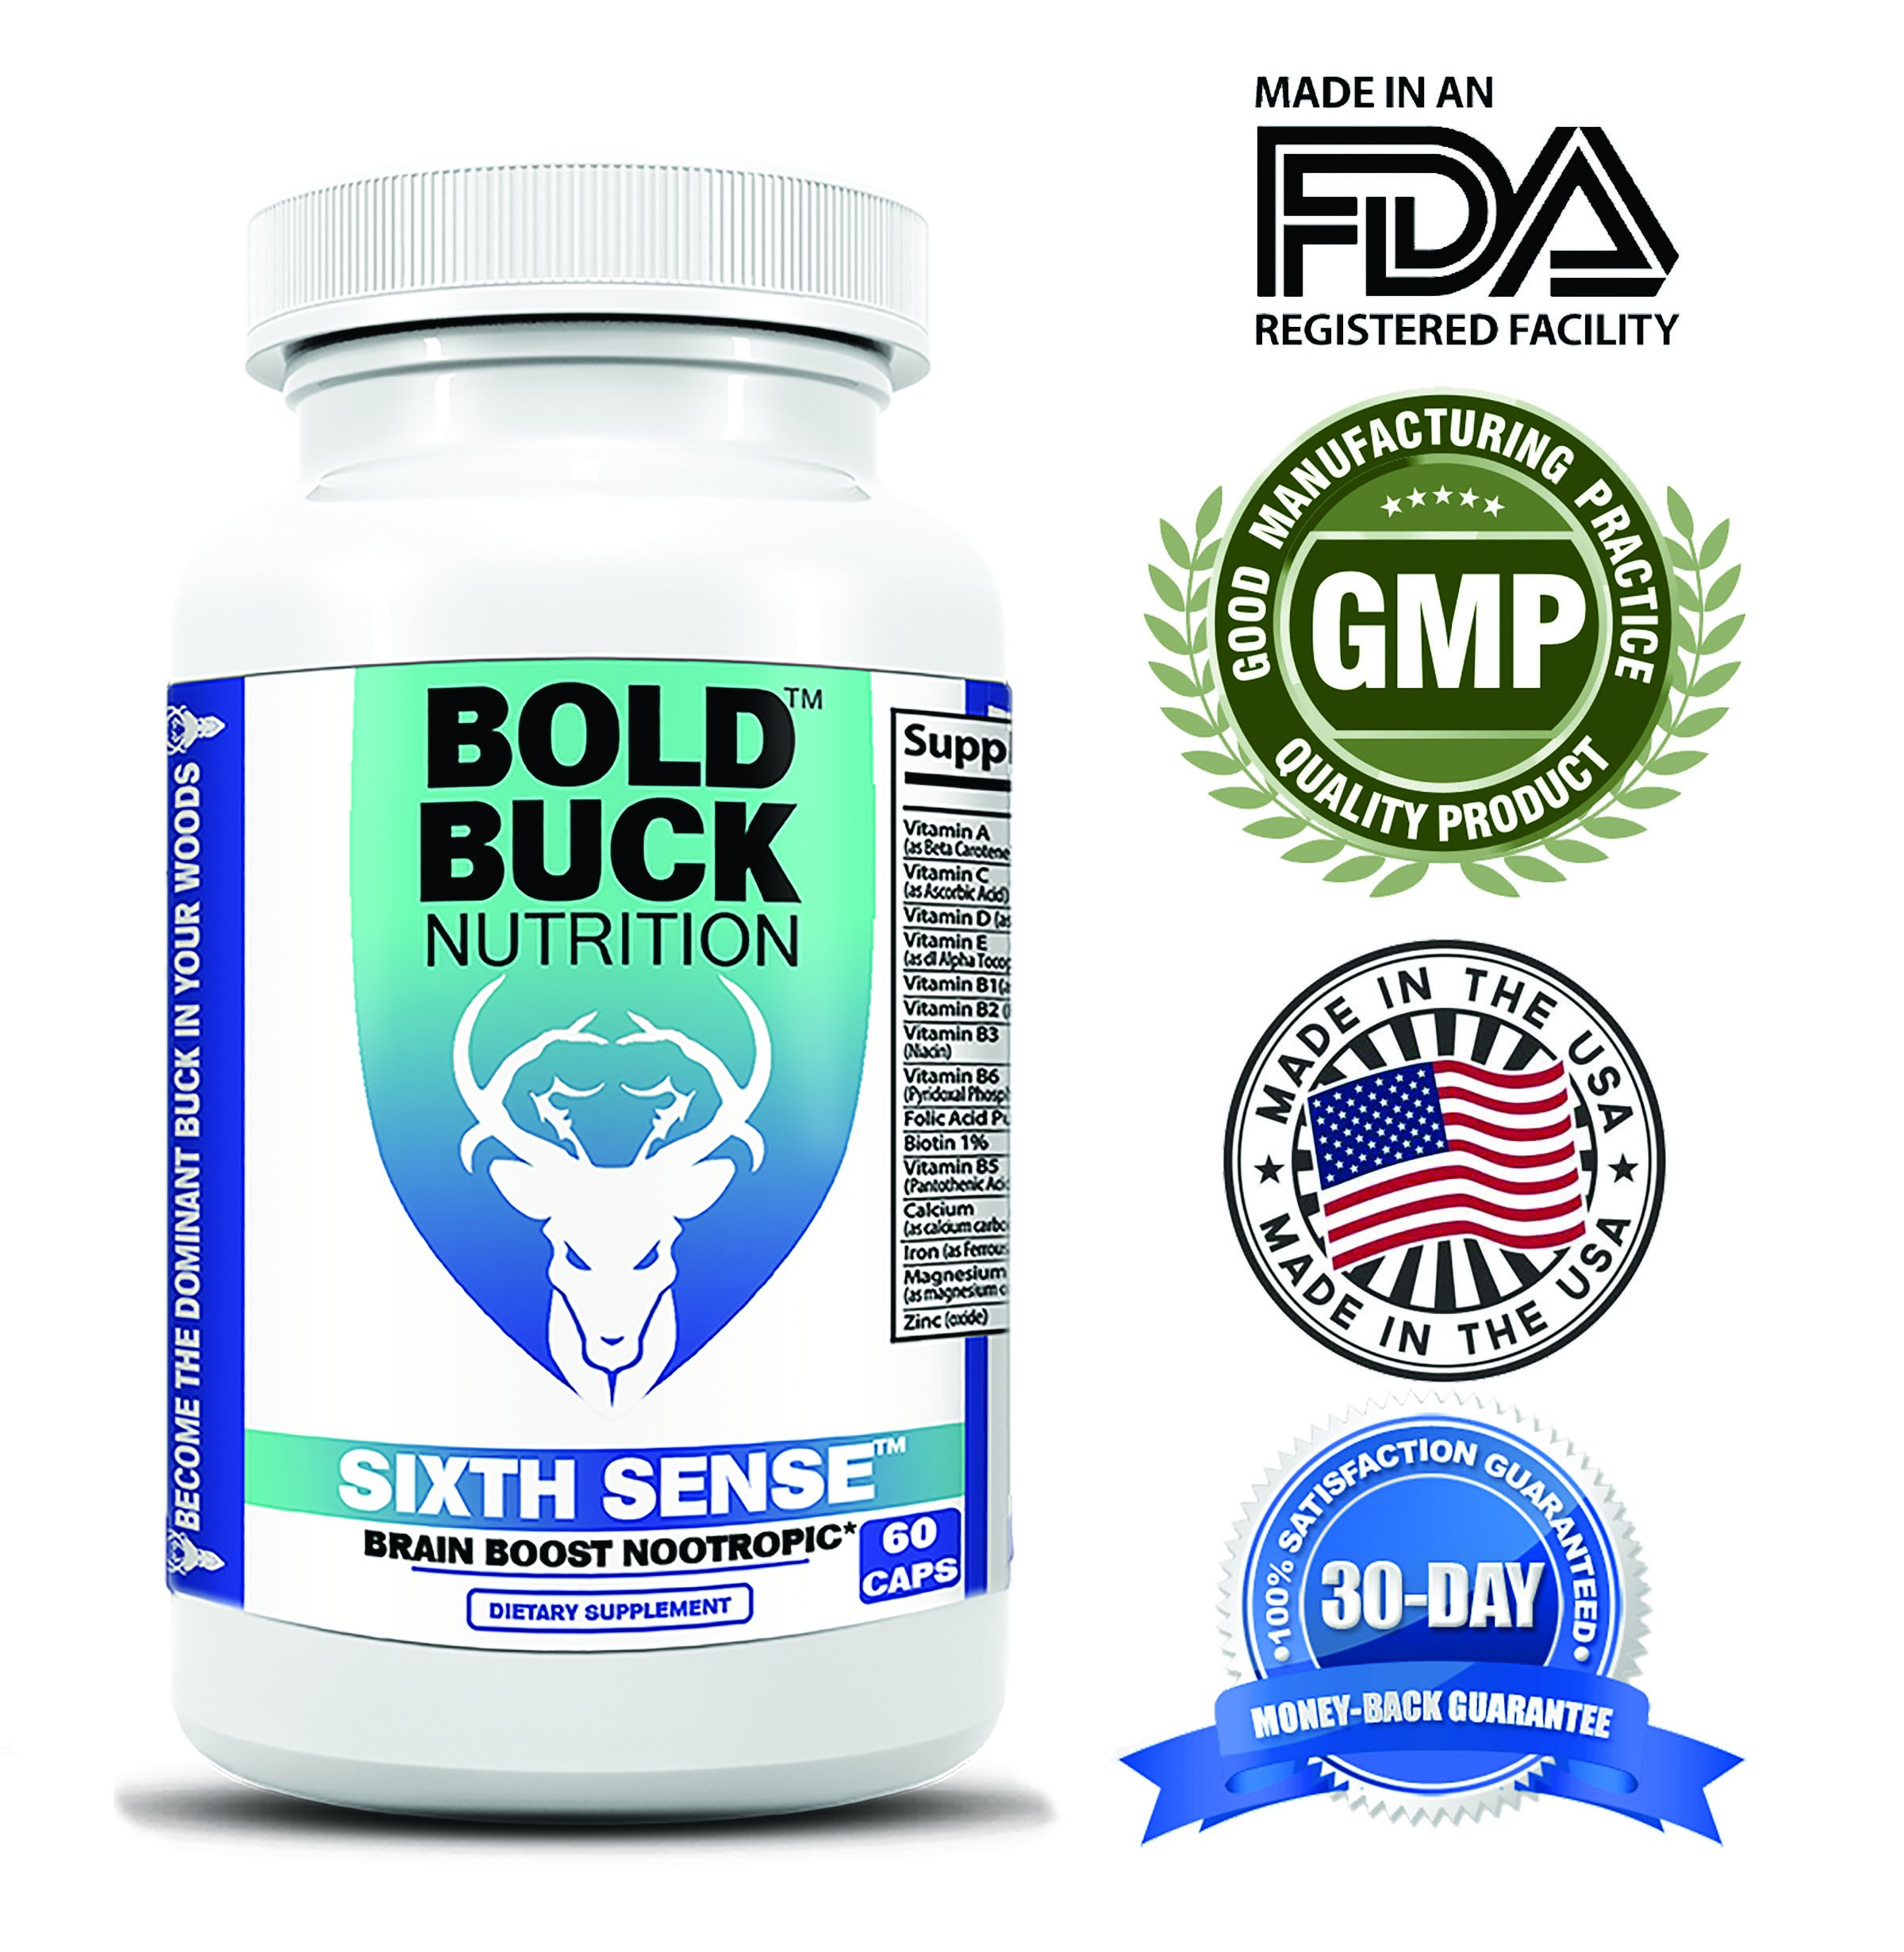 Sixth Sense - Powerful Brain Boost Nootropic - All Natural - Made in the USA - GMP Certified Facility - Easy Open Pressure Seal - Improve Memory, Concentration, Mental Clarity, Focus - Boost Mood